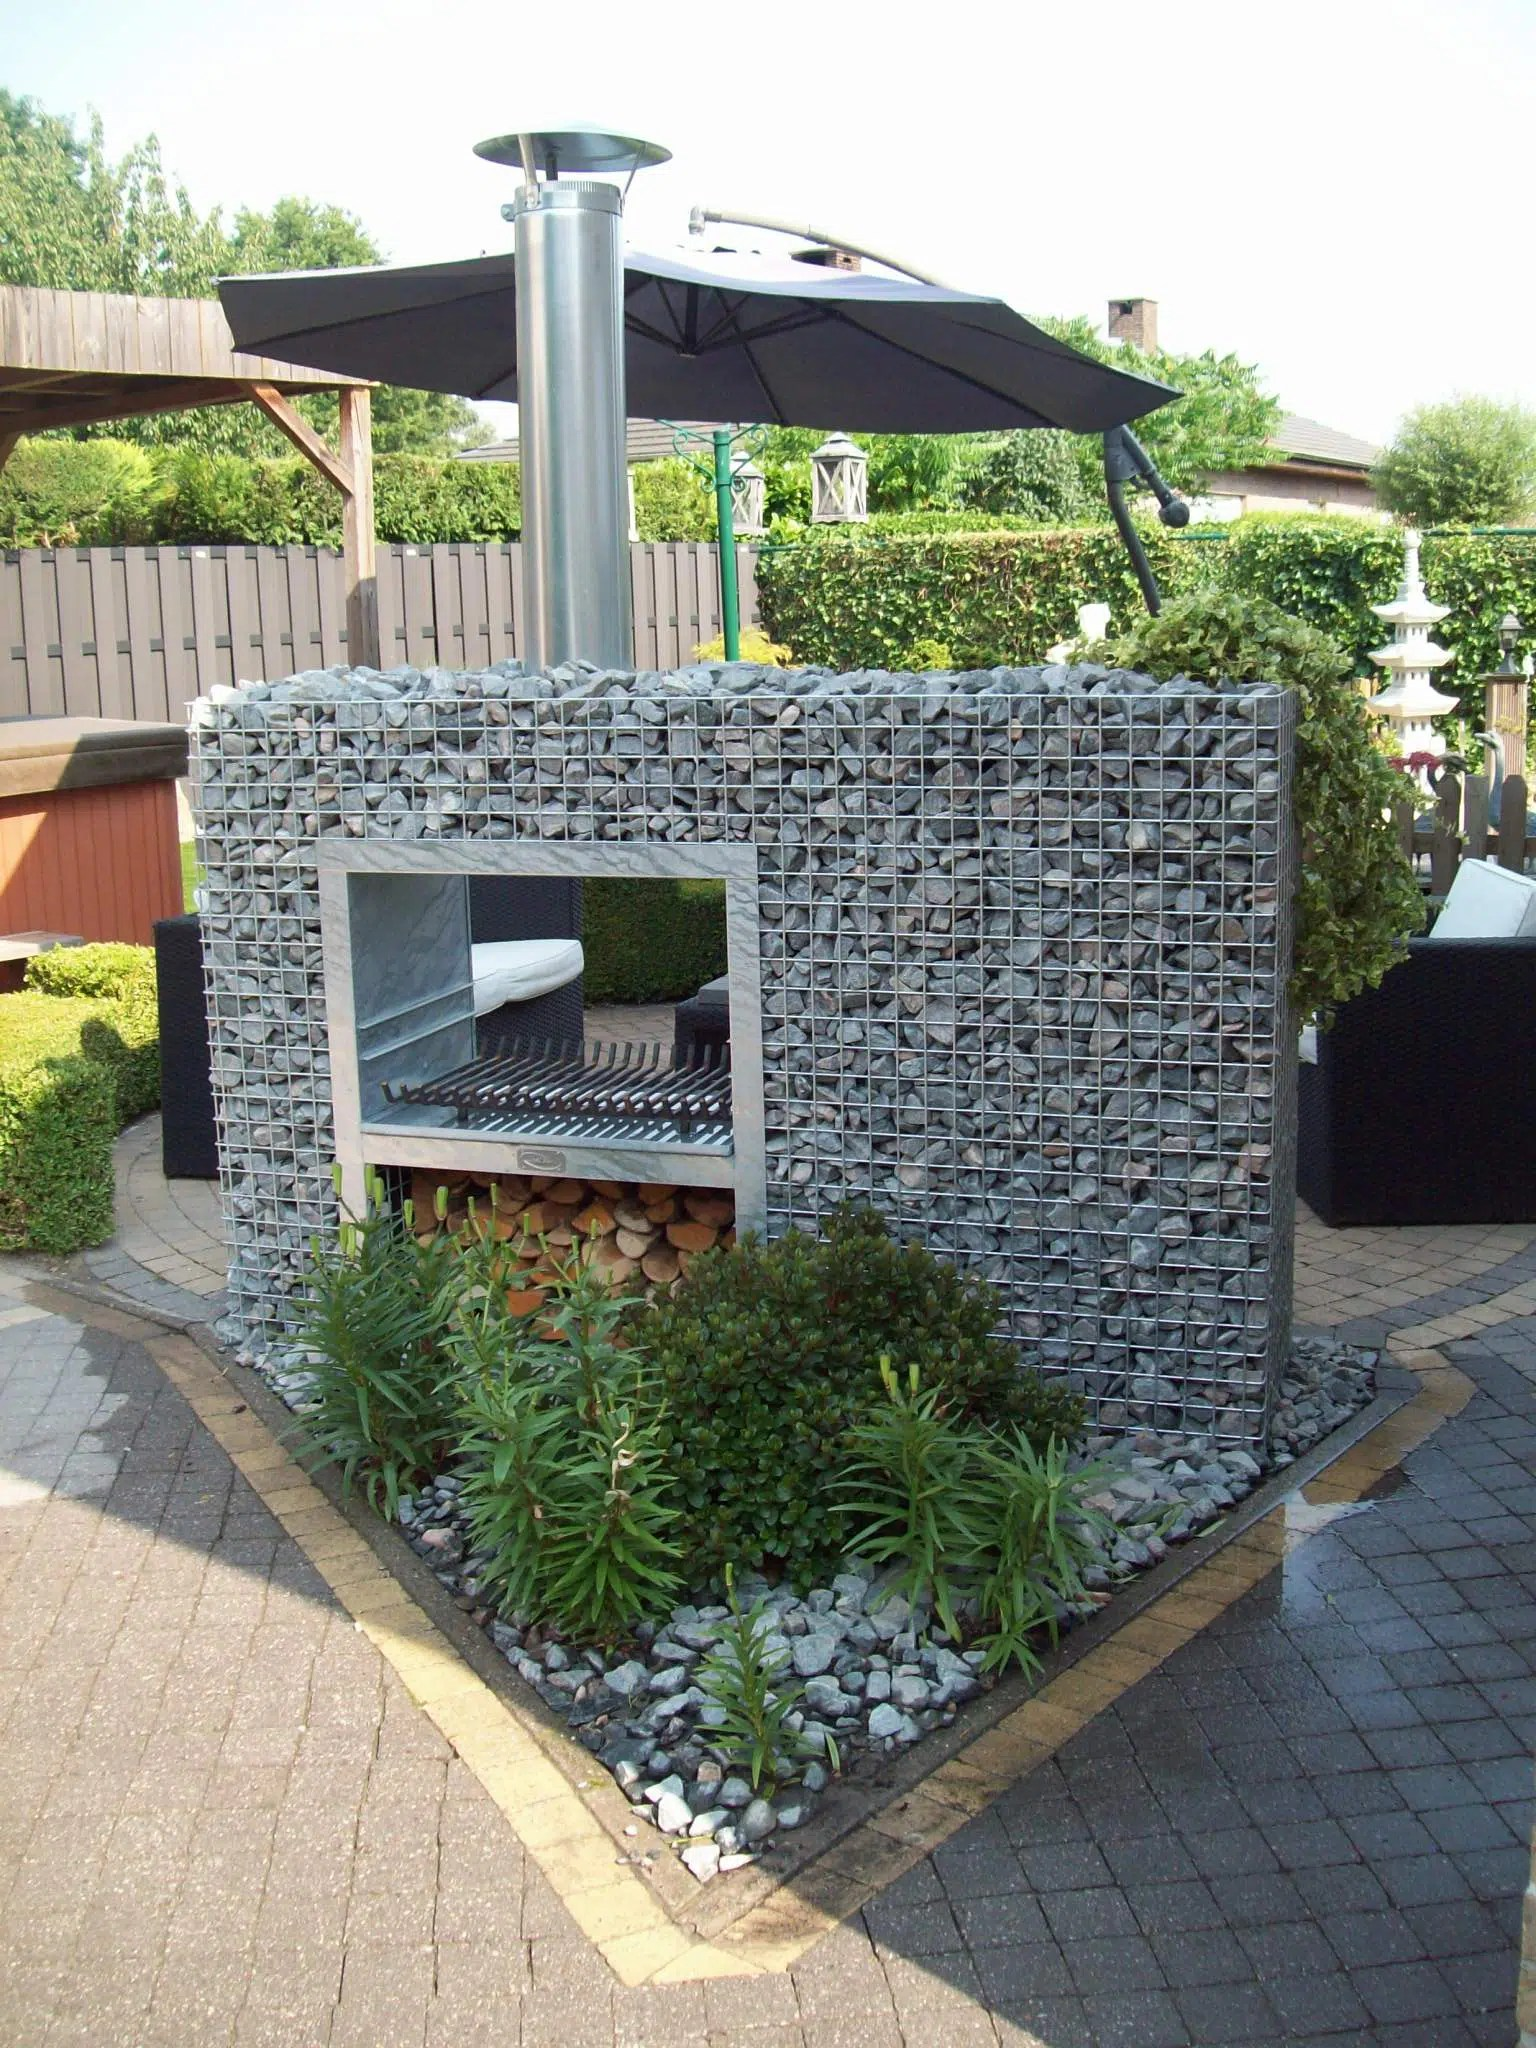 Decoration Barbecue Jardin Barbecue Gabion Rectangle Jardivrac Décoration Pour Le